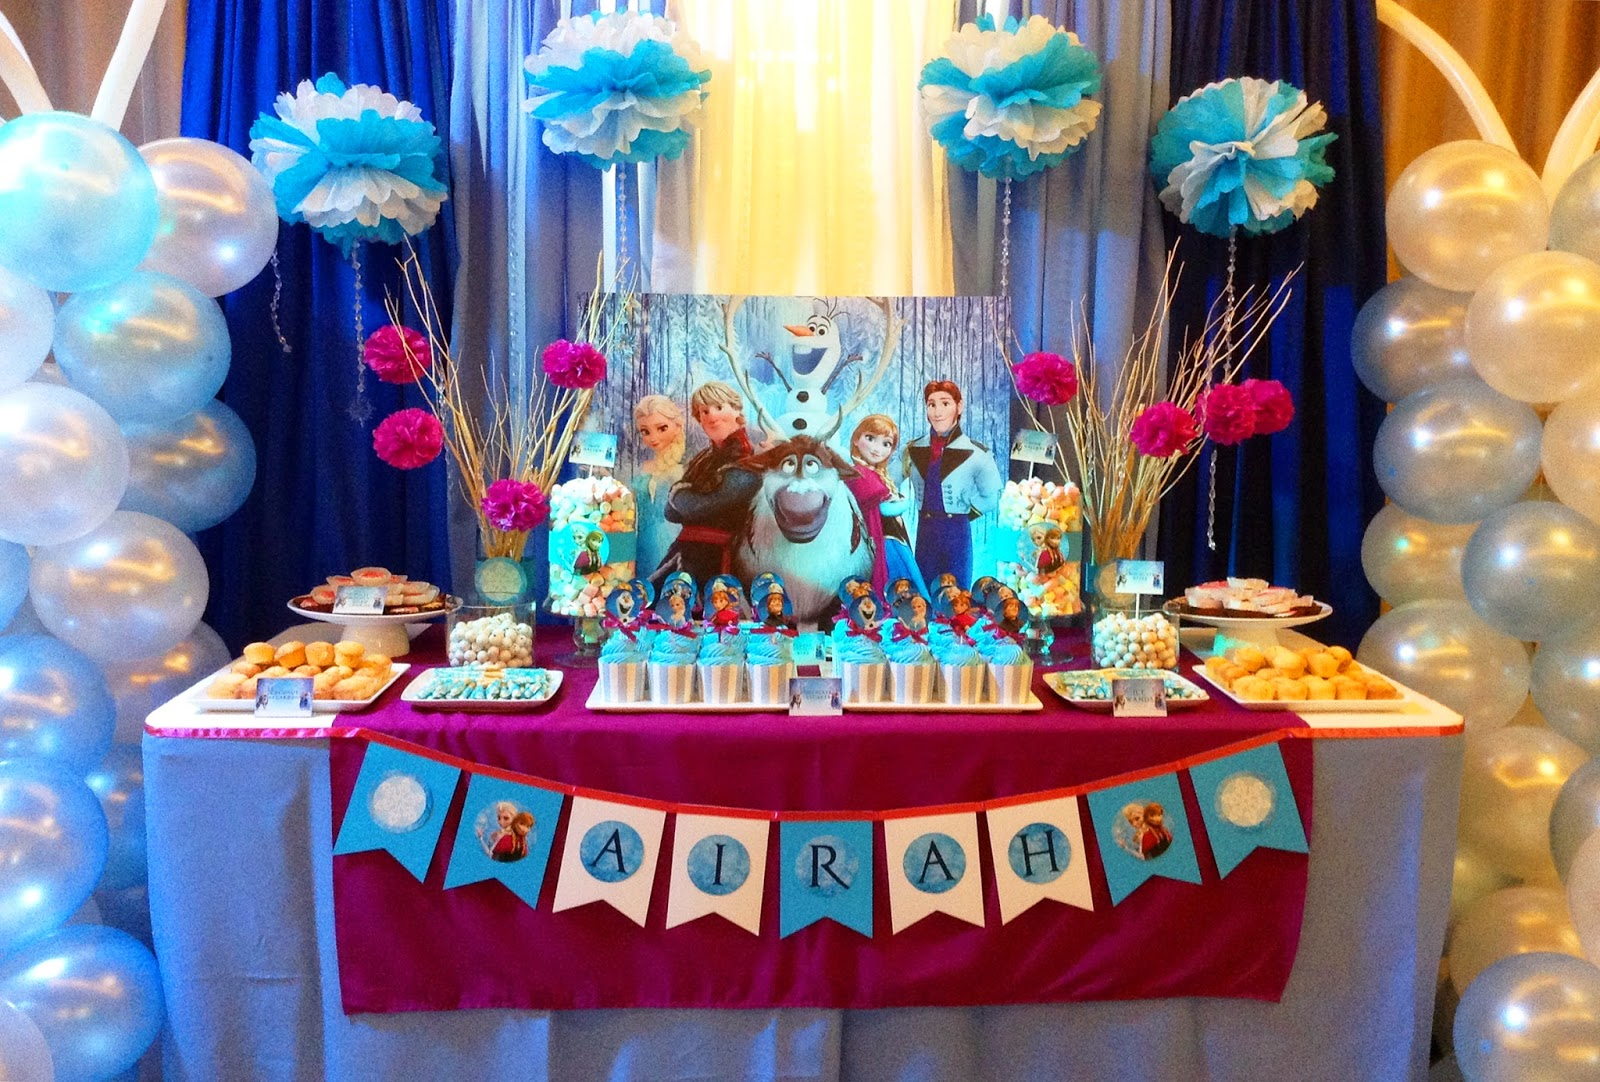 Disney Frozen Themed Birthday Party